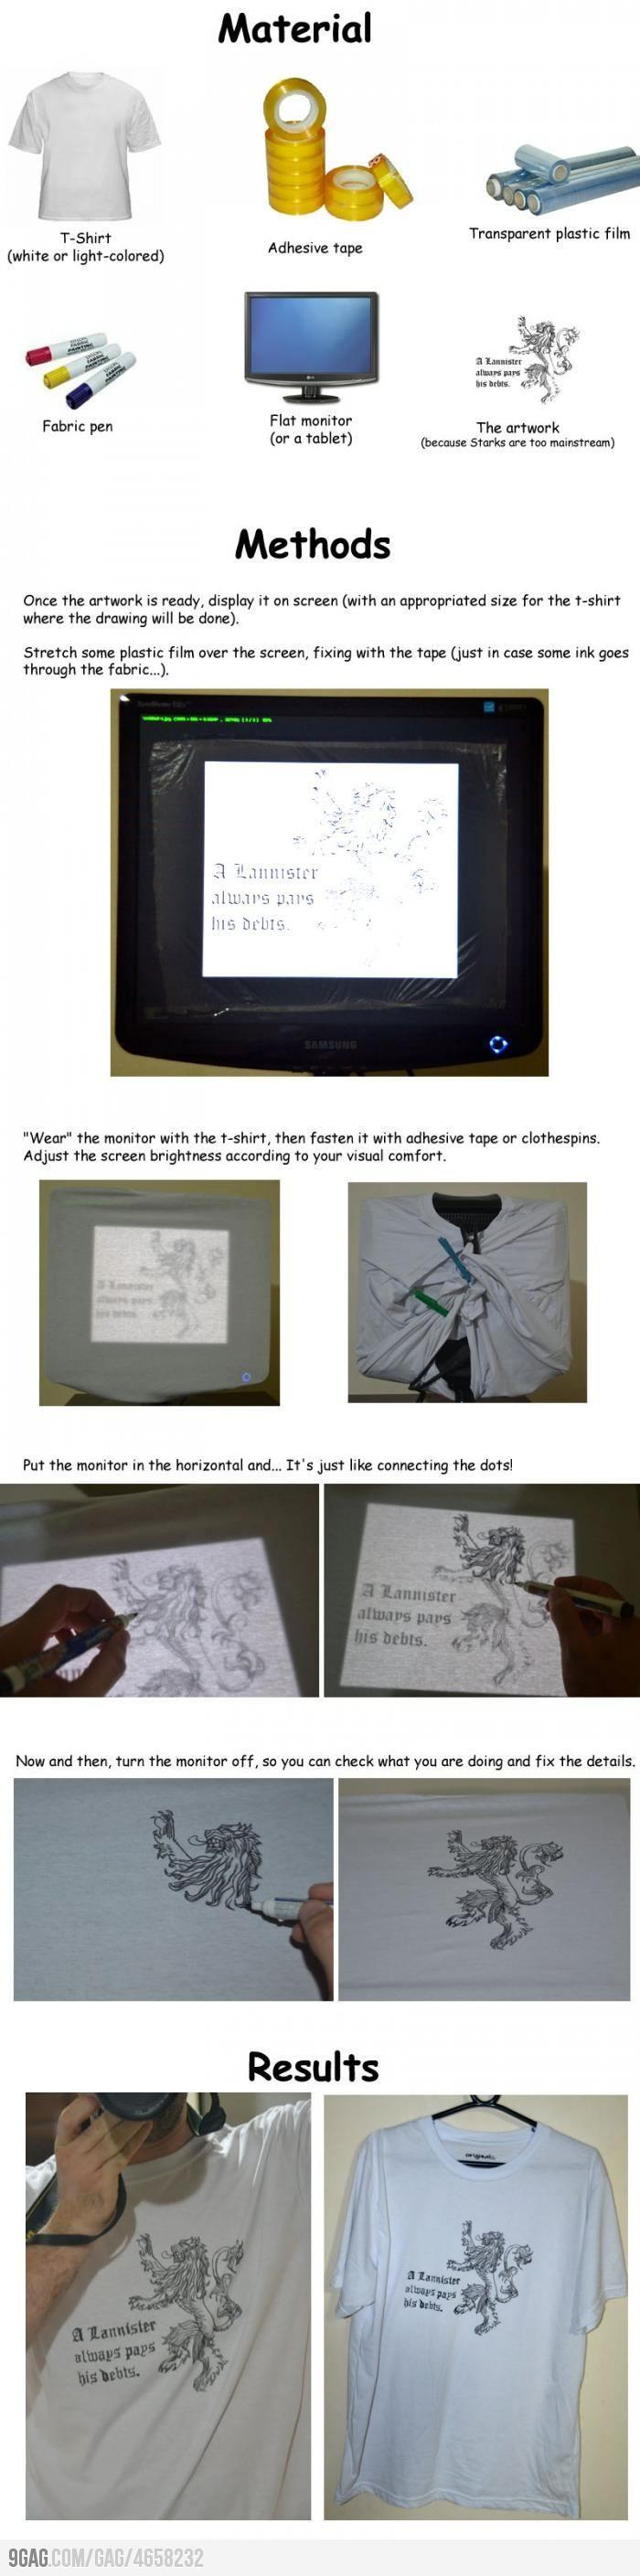 9GAG - Poor man's t-shirt printer